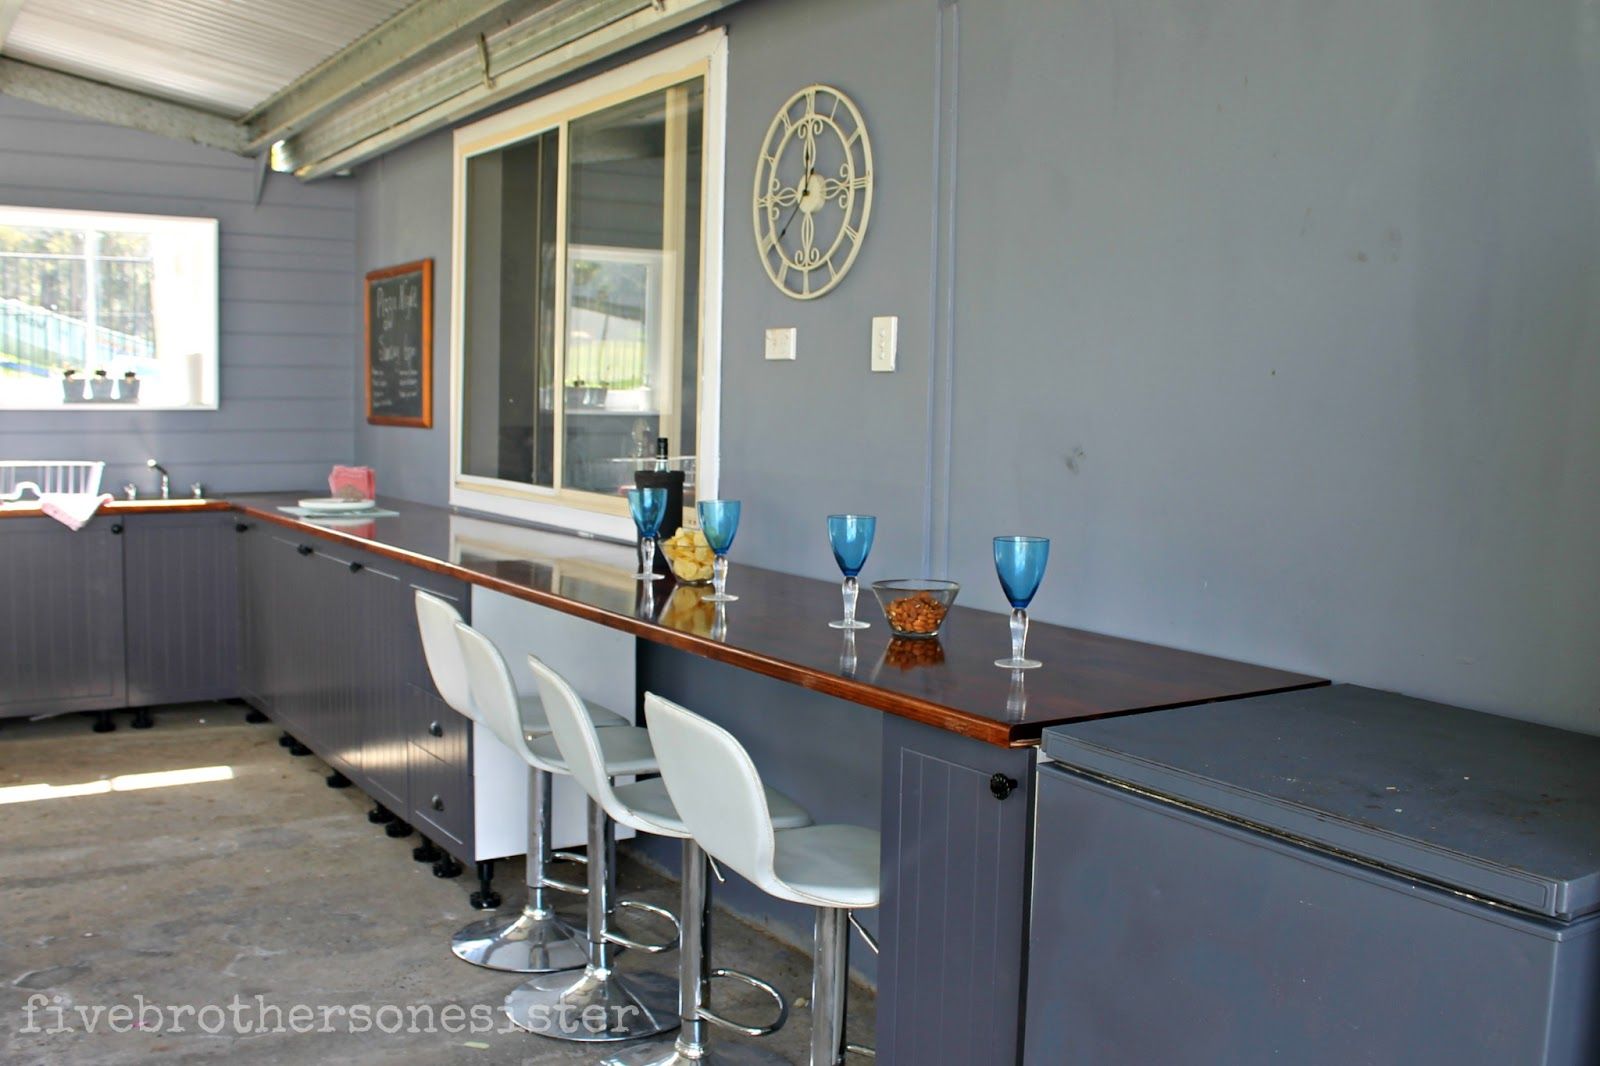 Bunnings Bar Stools Five Brothers One Sister Outdoor Kitchen Reveal